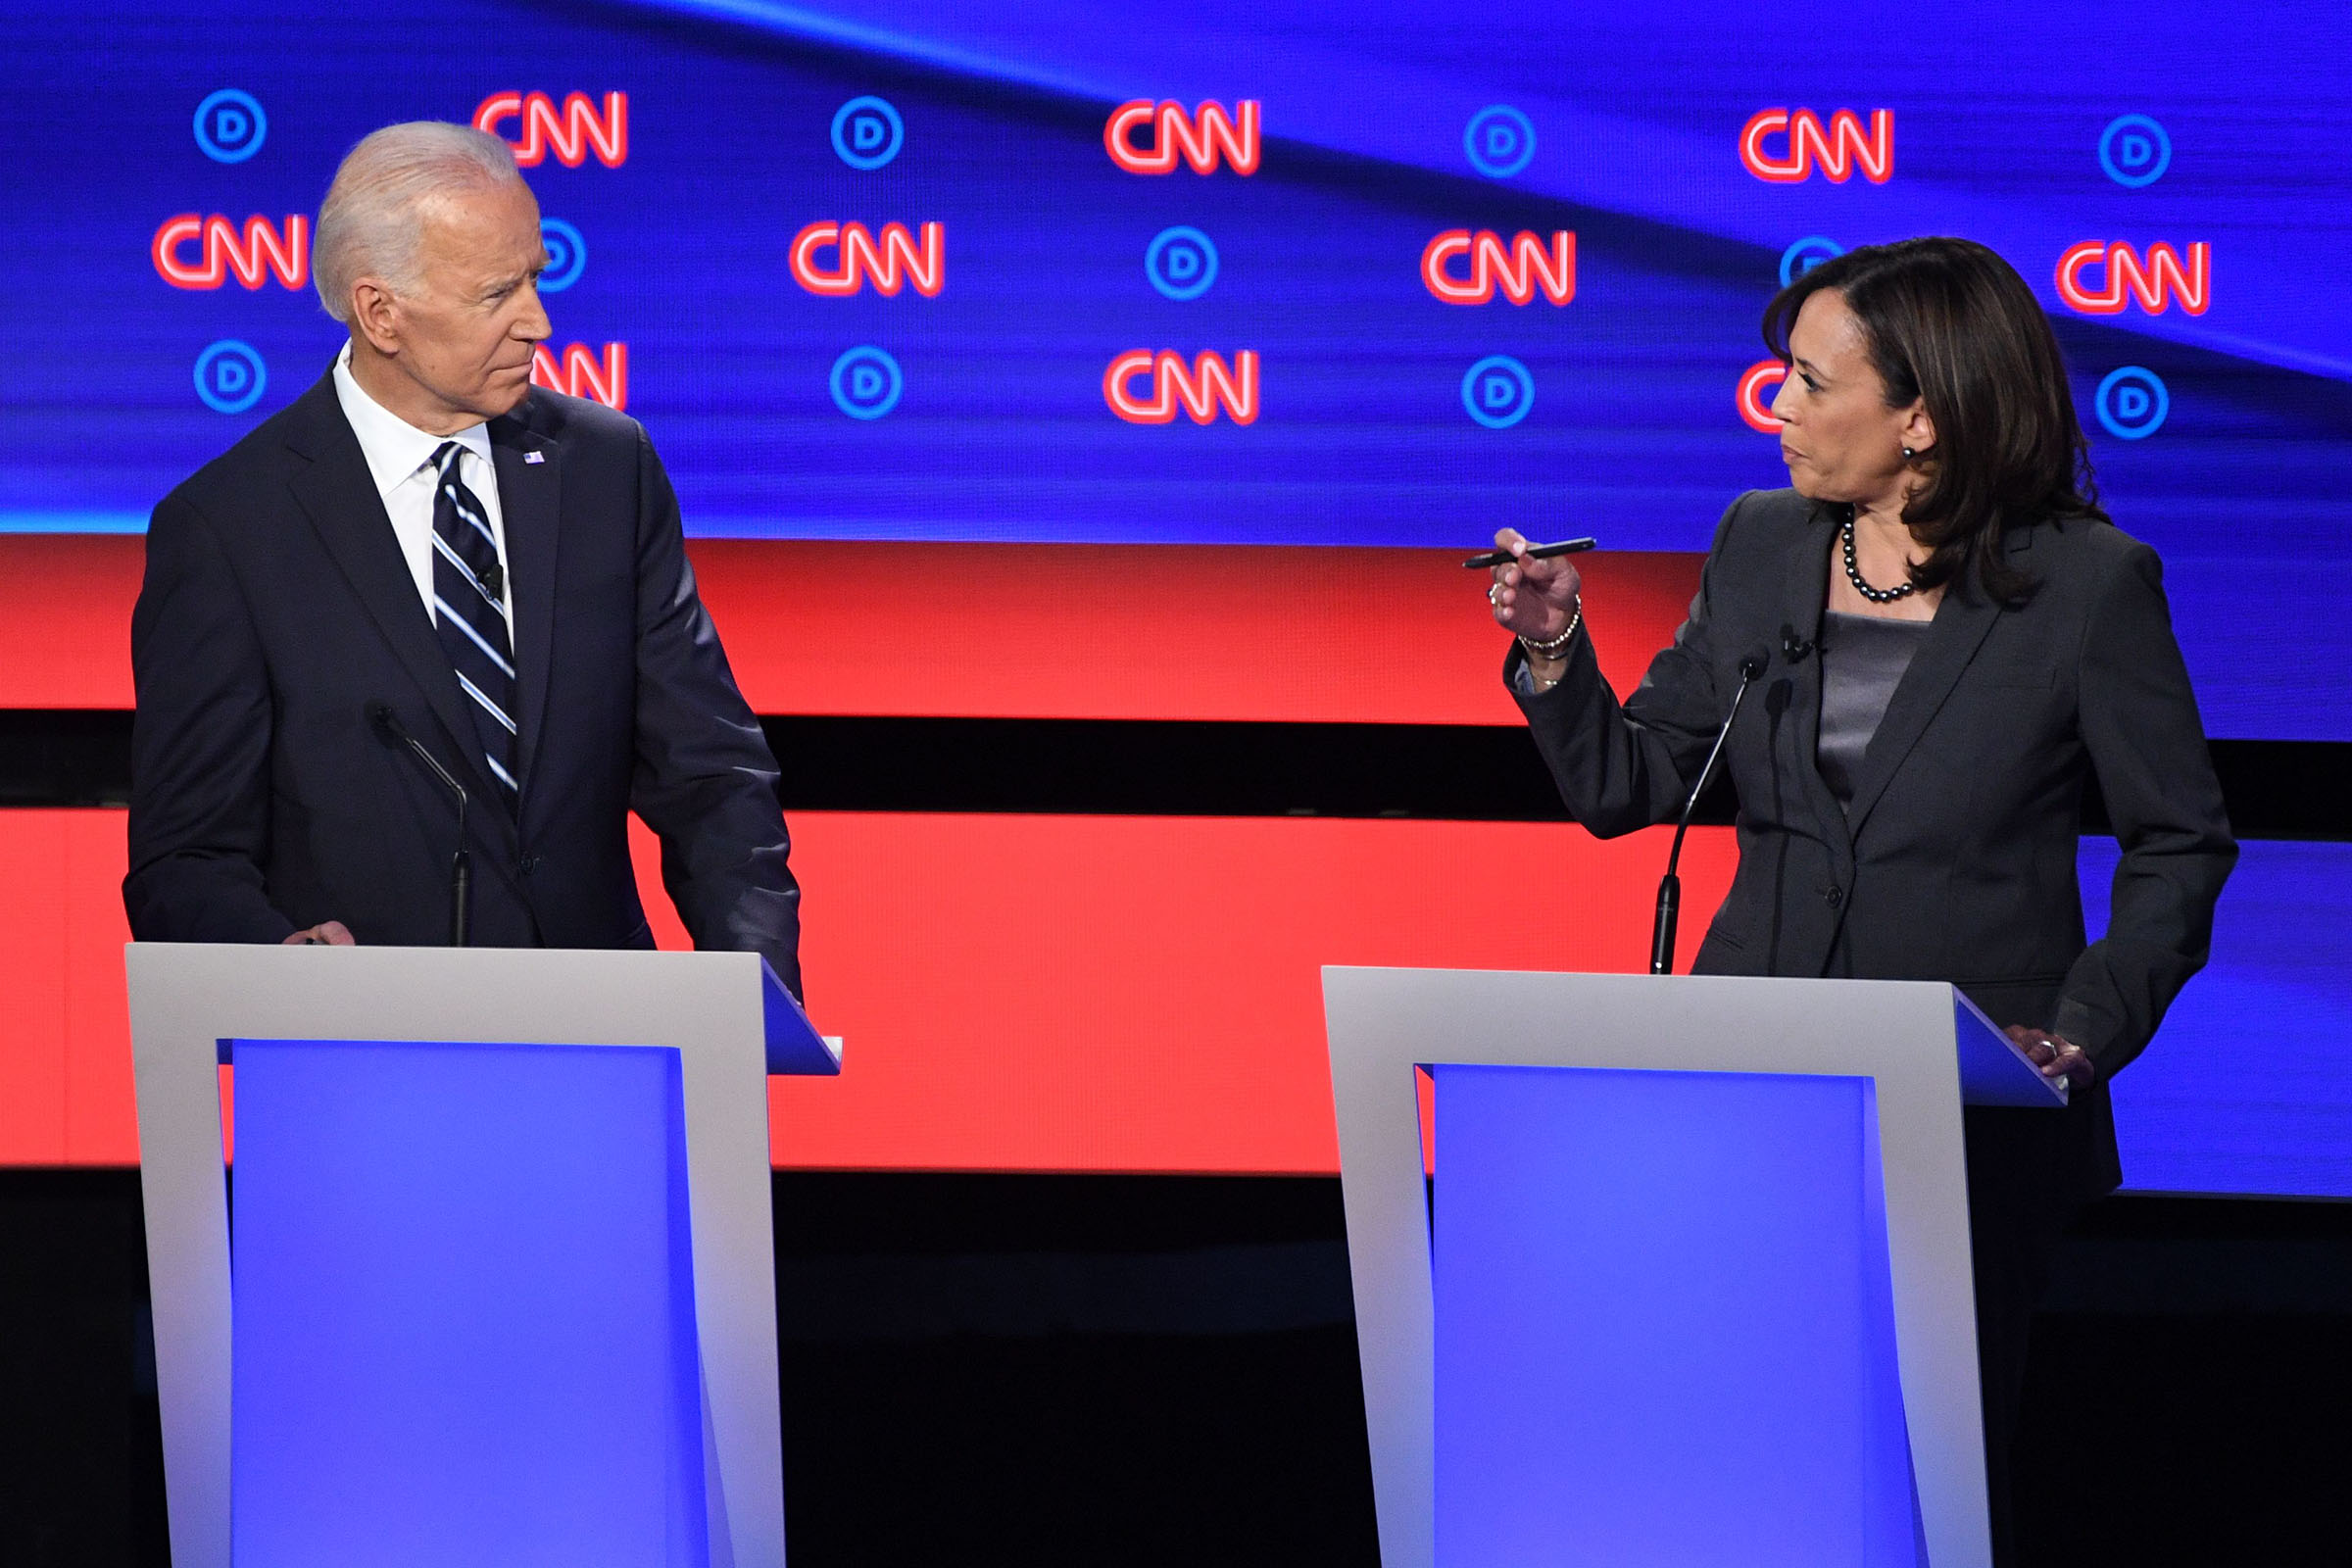 Democratic presidential hopefuls Former Vice President Joe Biden and US Senator from California Kamala Harris speak during the second round of the second Democratic primary debate of the 2020 presidential campaign season hosted by CNN at the Fox Theatre in Detroit, Michigan on July 31, 2019.